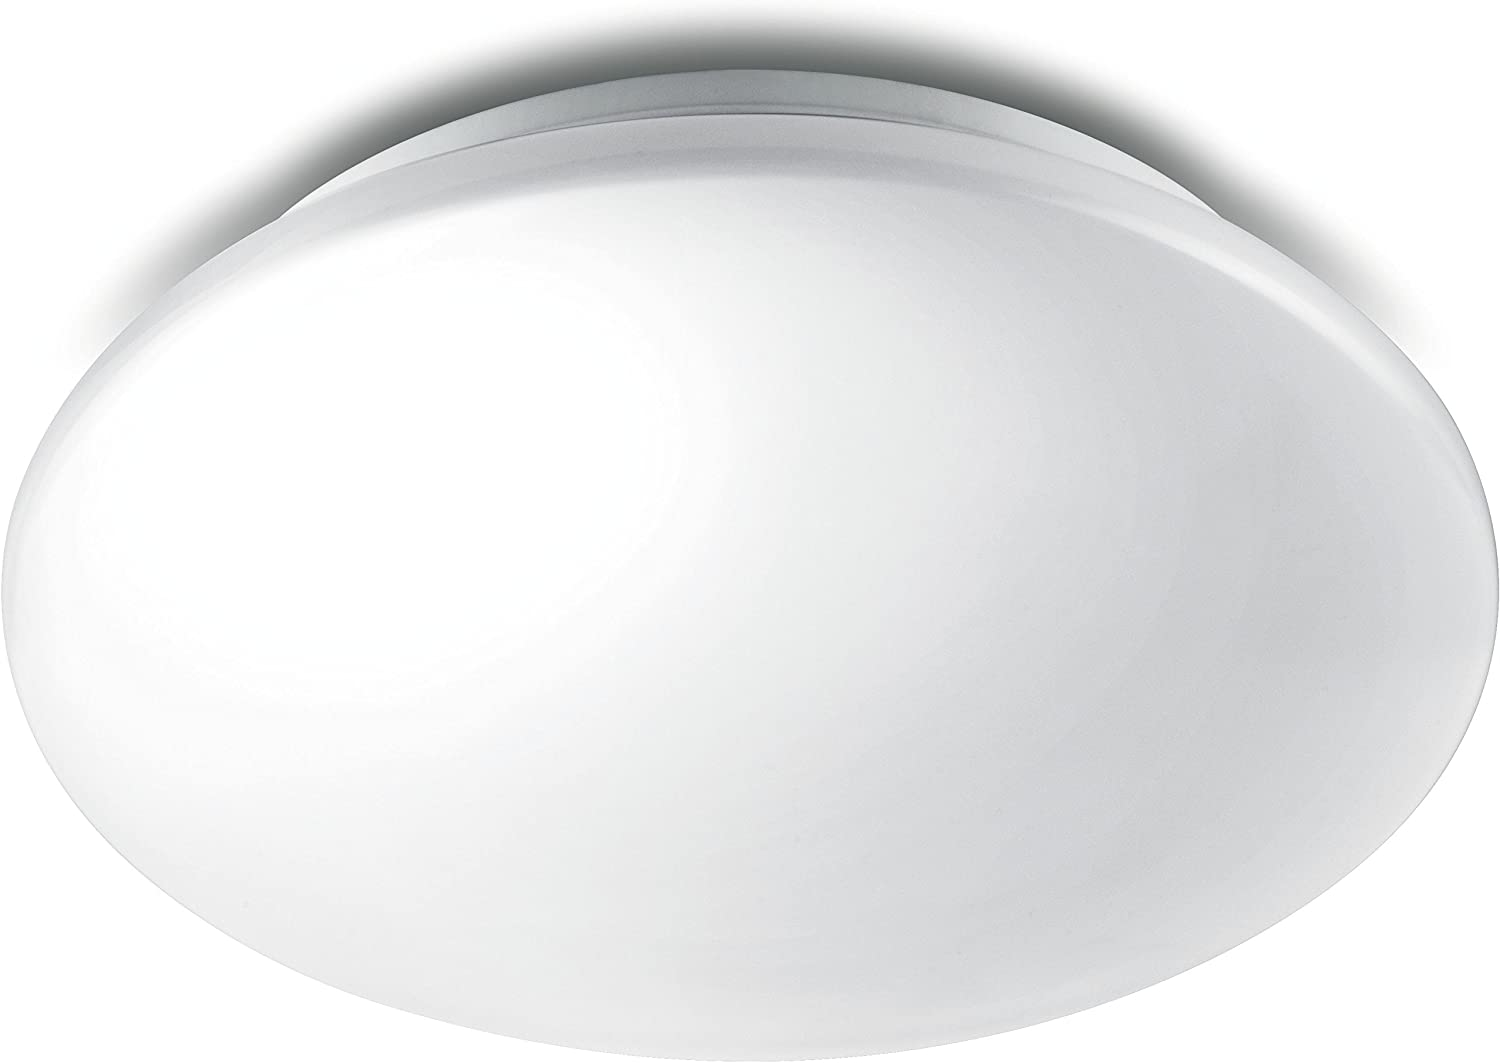 Philips Lighting myLiving Plafón iluminación interior, Blanco Cálido, 850 Lumen